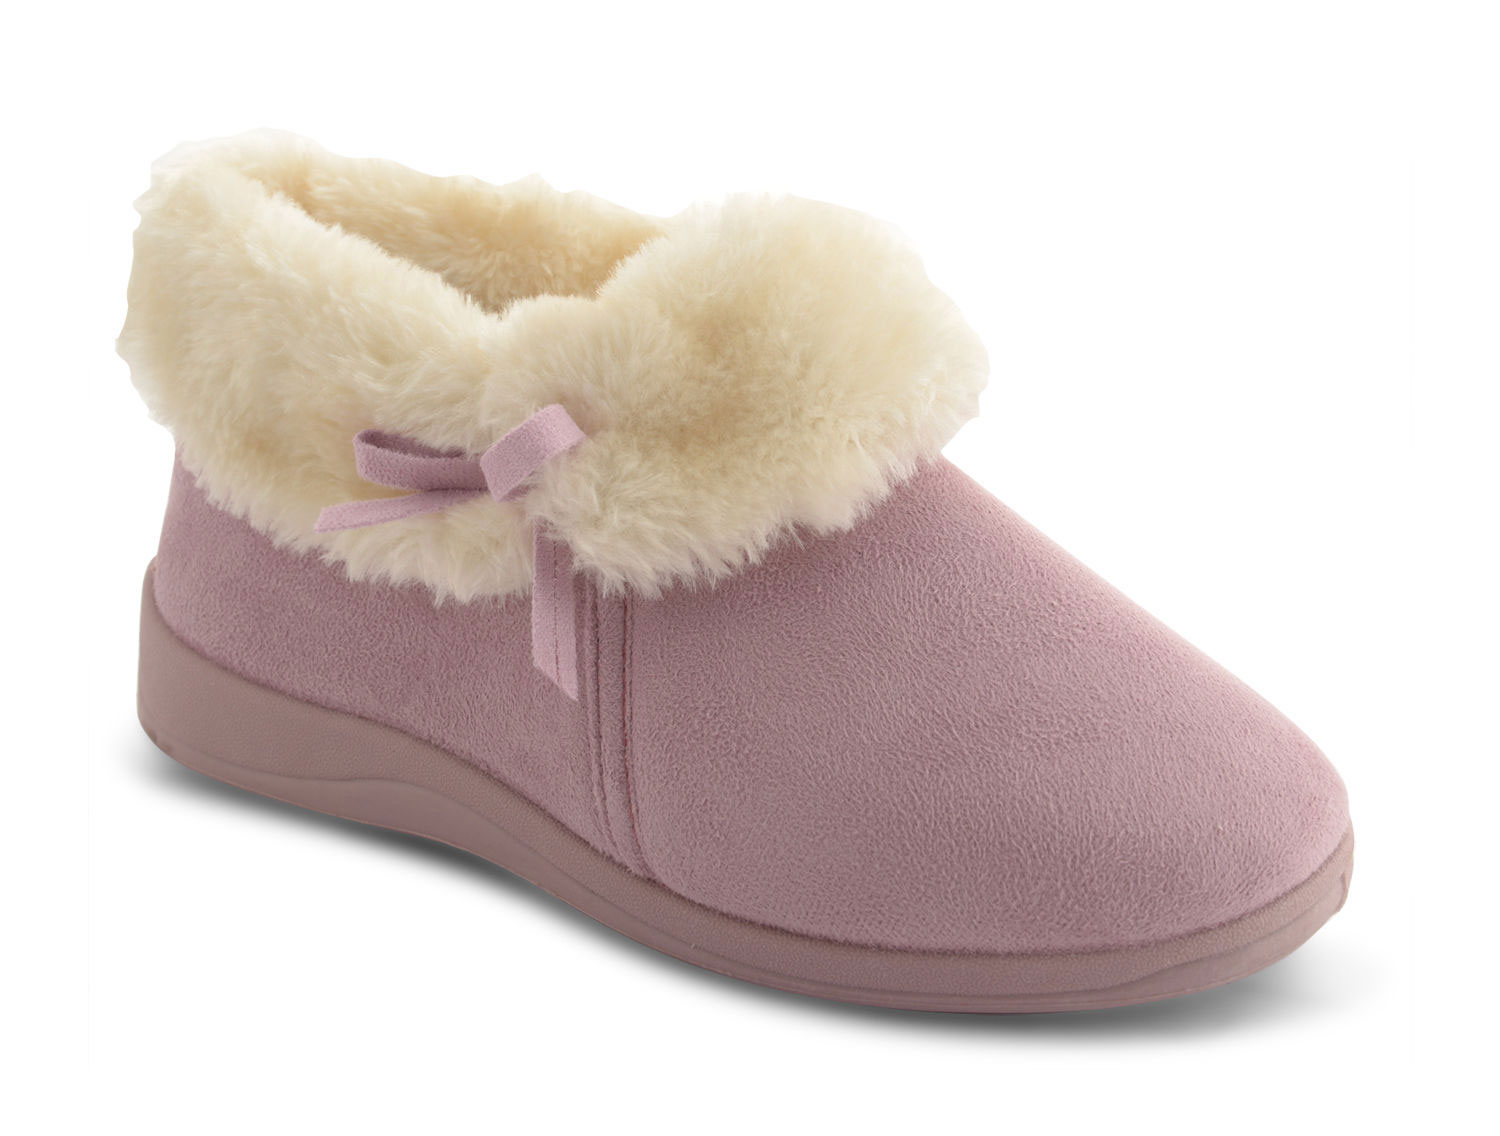 For fans of fun, check out our selection of bootie slippers: the stylish slipper to wear outside. From pajamas to jeans, it feels just as good to wear these slippers outside as it does inside. Keep the comfort going in easy-wear and easy-to-style bootie slippers!